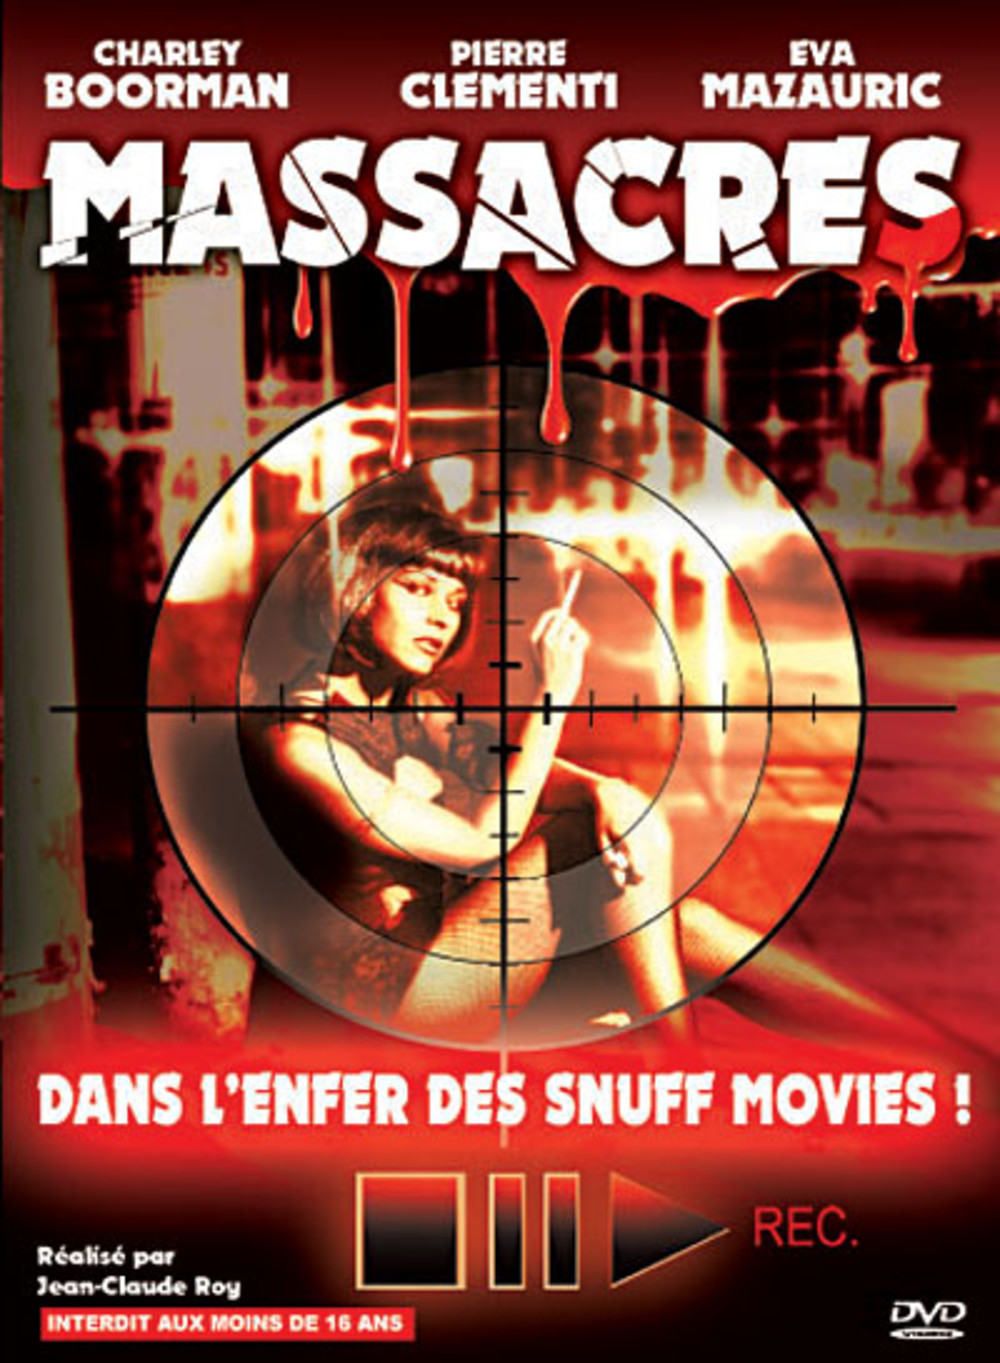 Massacres